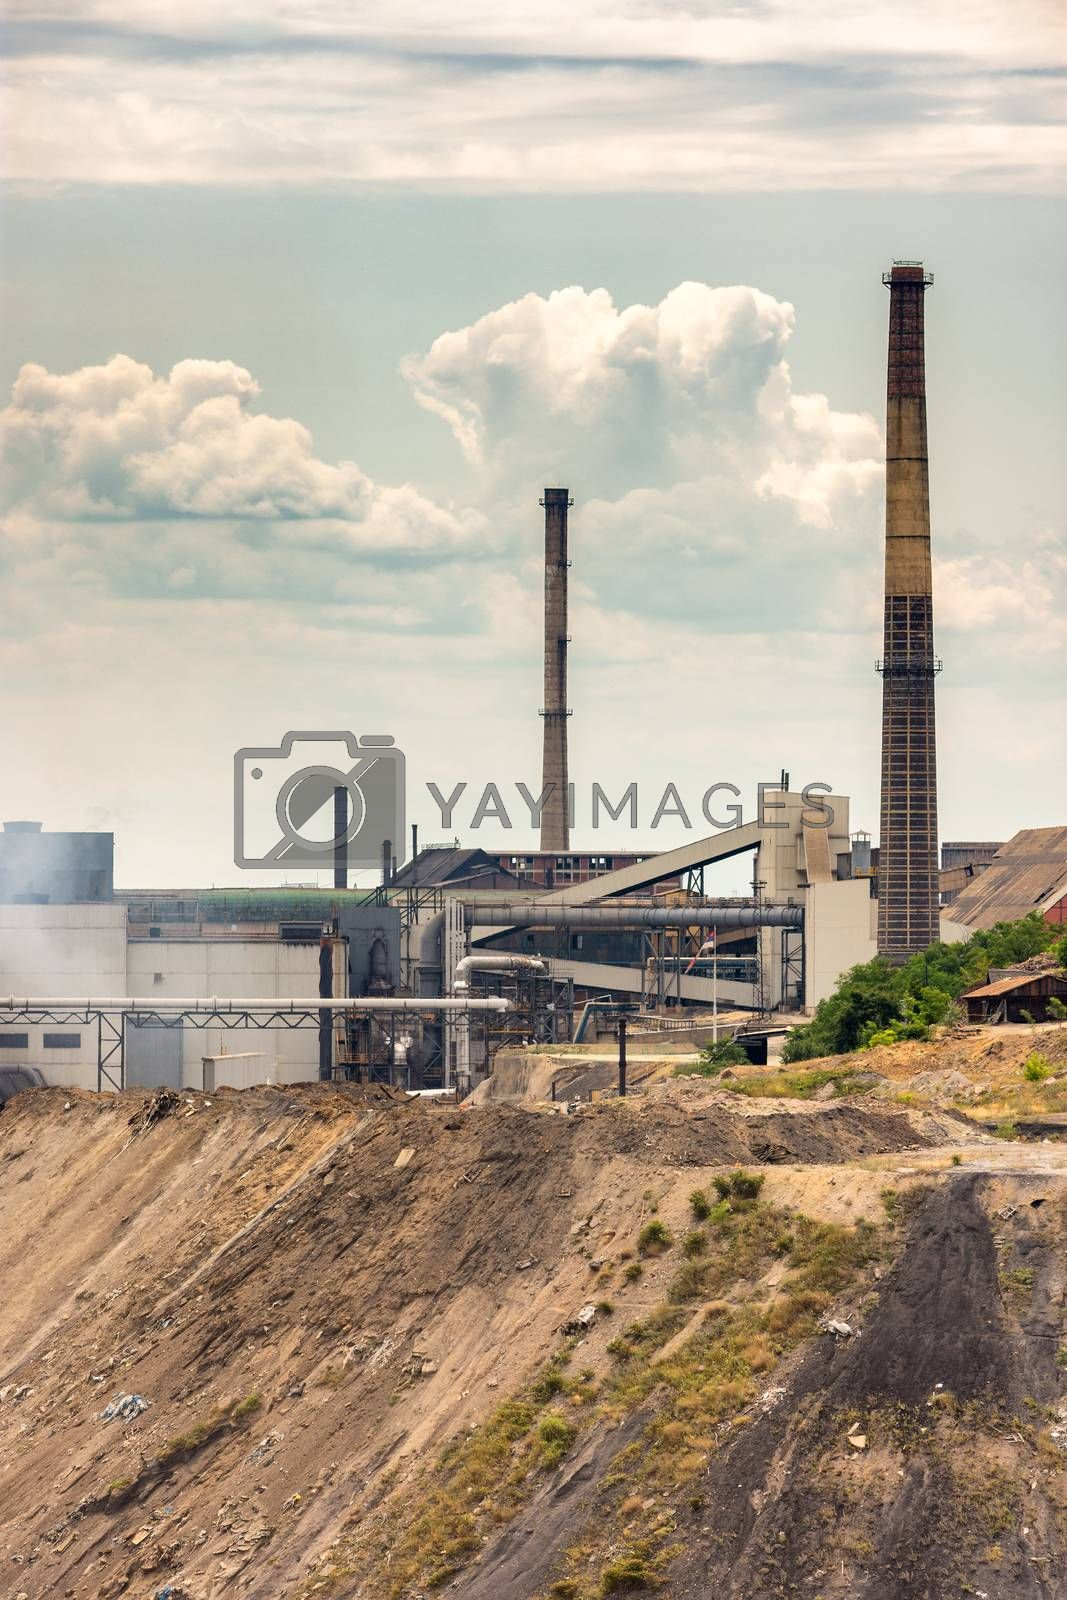 Bor / Serbia - July 13, 2019: Copper mine and smelting complex of Zijin Bor Copper in Bor, Eastern Serbia, one of the largest copper mines in Europe owned by Chinese mining company Zijin Mining Group